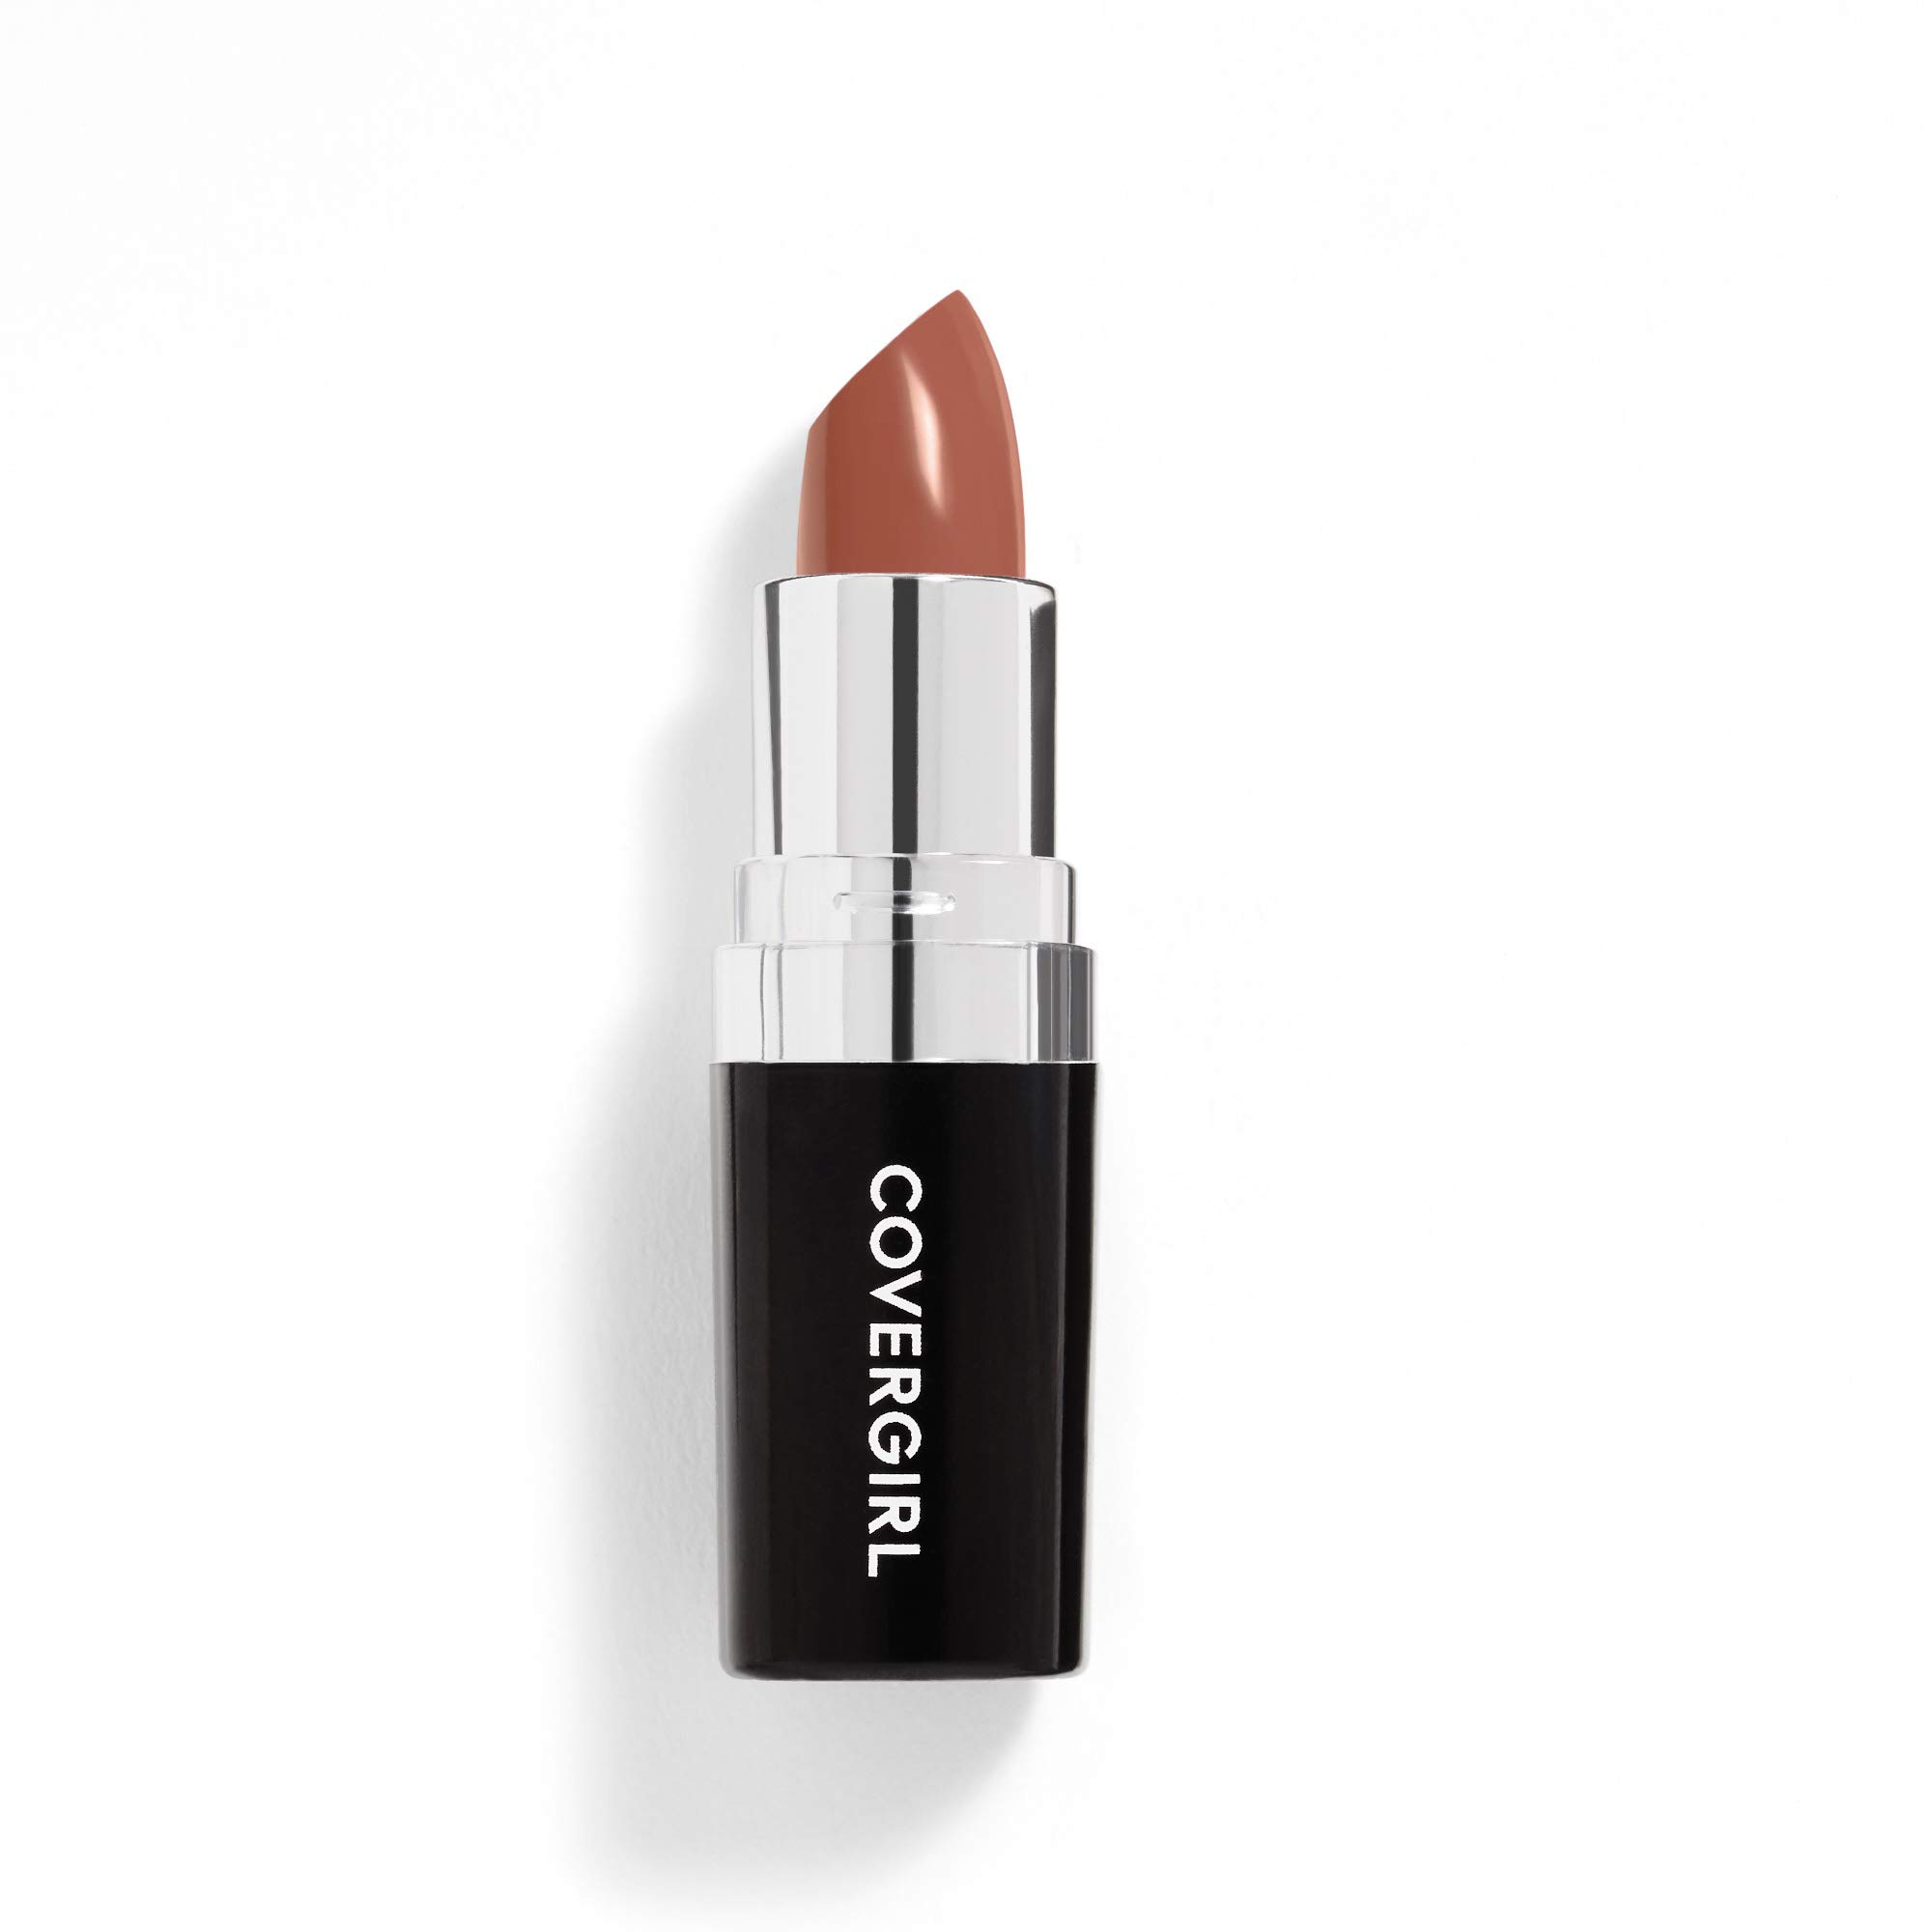 Covergirl Continuous Color Lipstick, 770 Bronzed Glow, 0.13 Oz (Packaging May Vary)